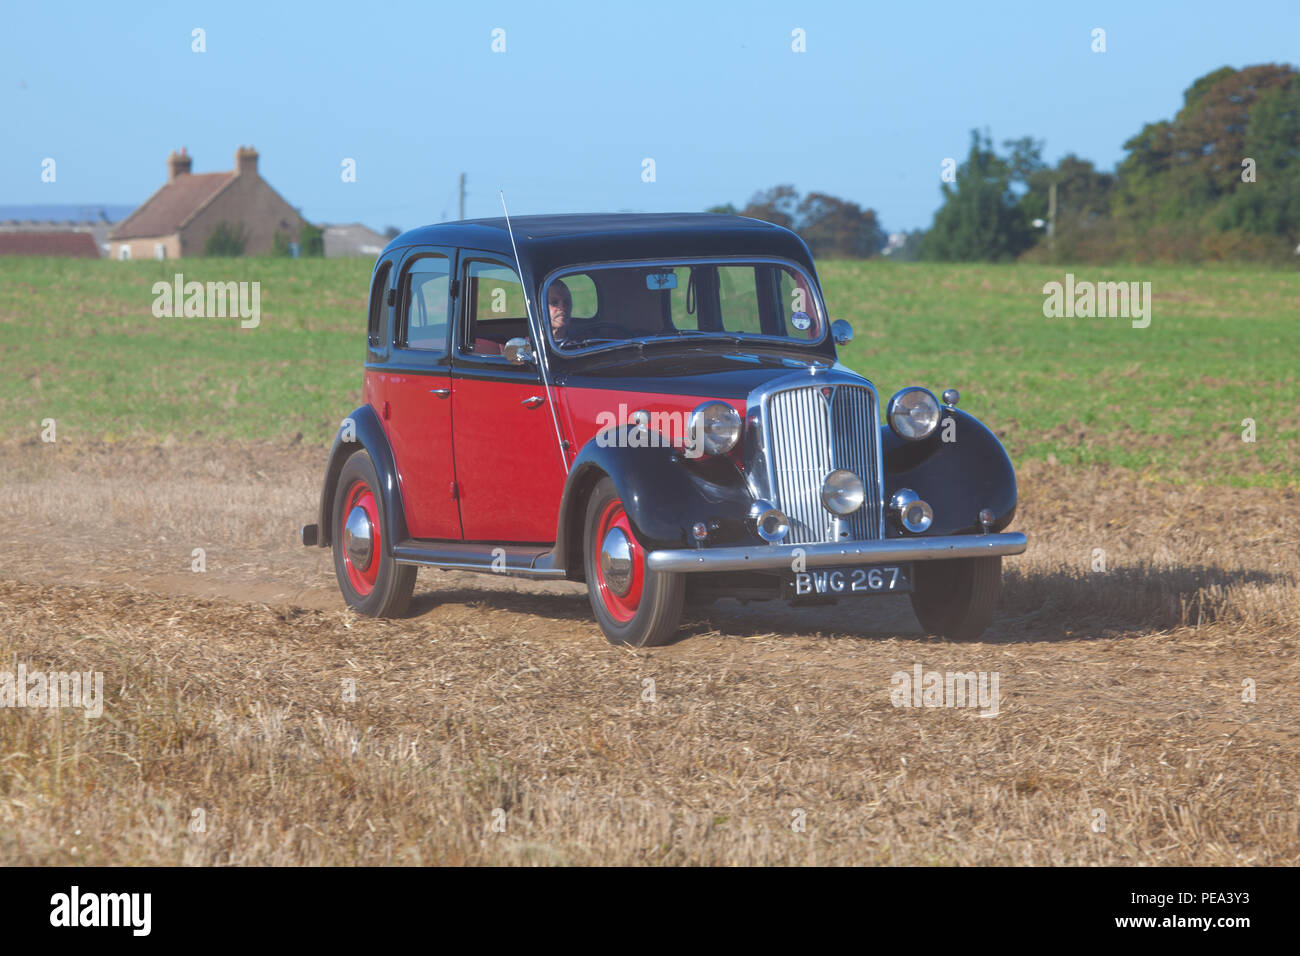 A Classic Rover 75 attending Ainderby Classic Car Show & Ploughing Match in North Yorkshire Stock Photo